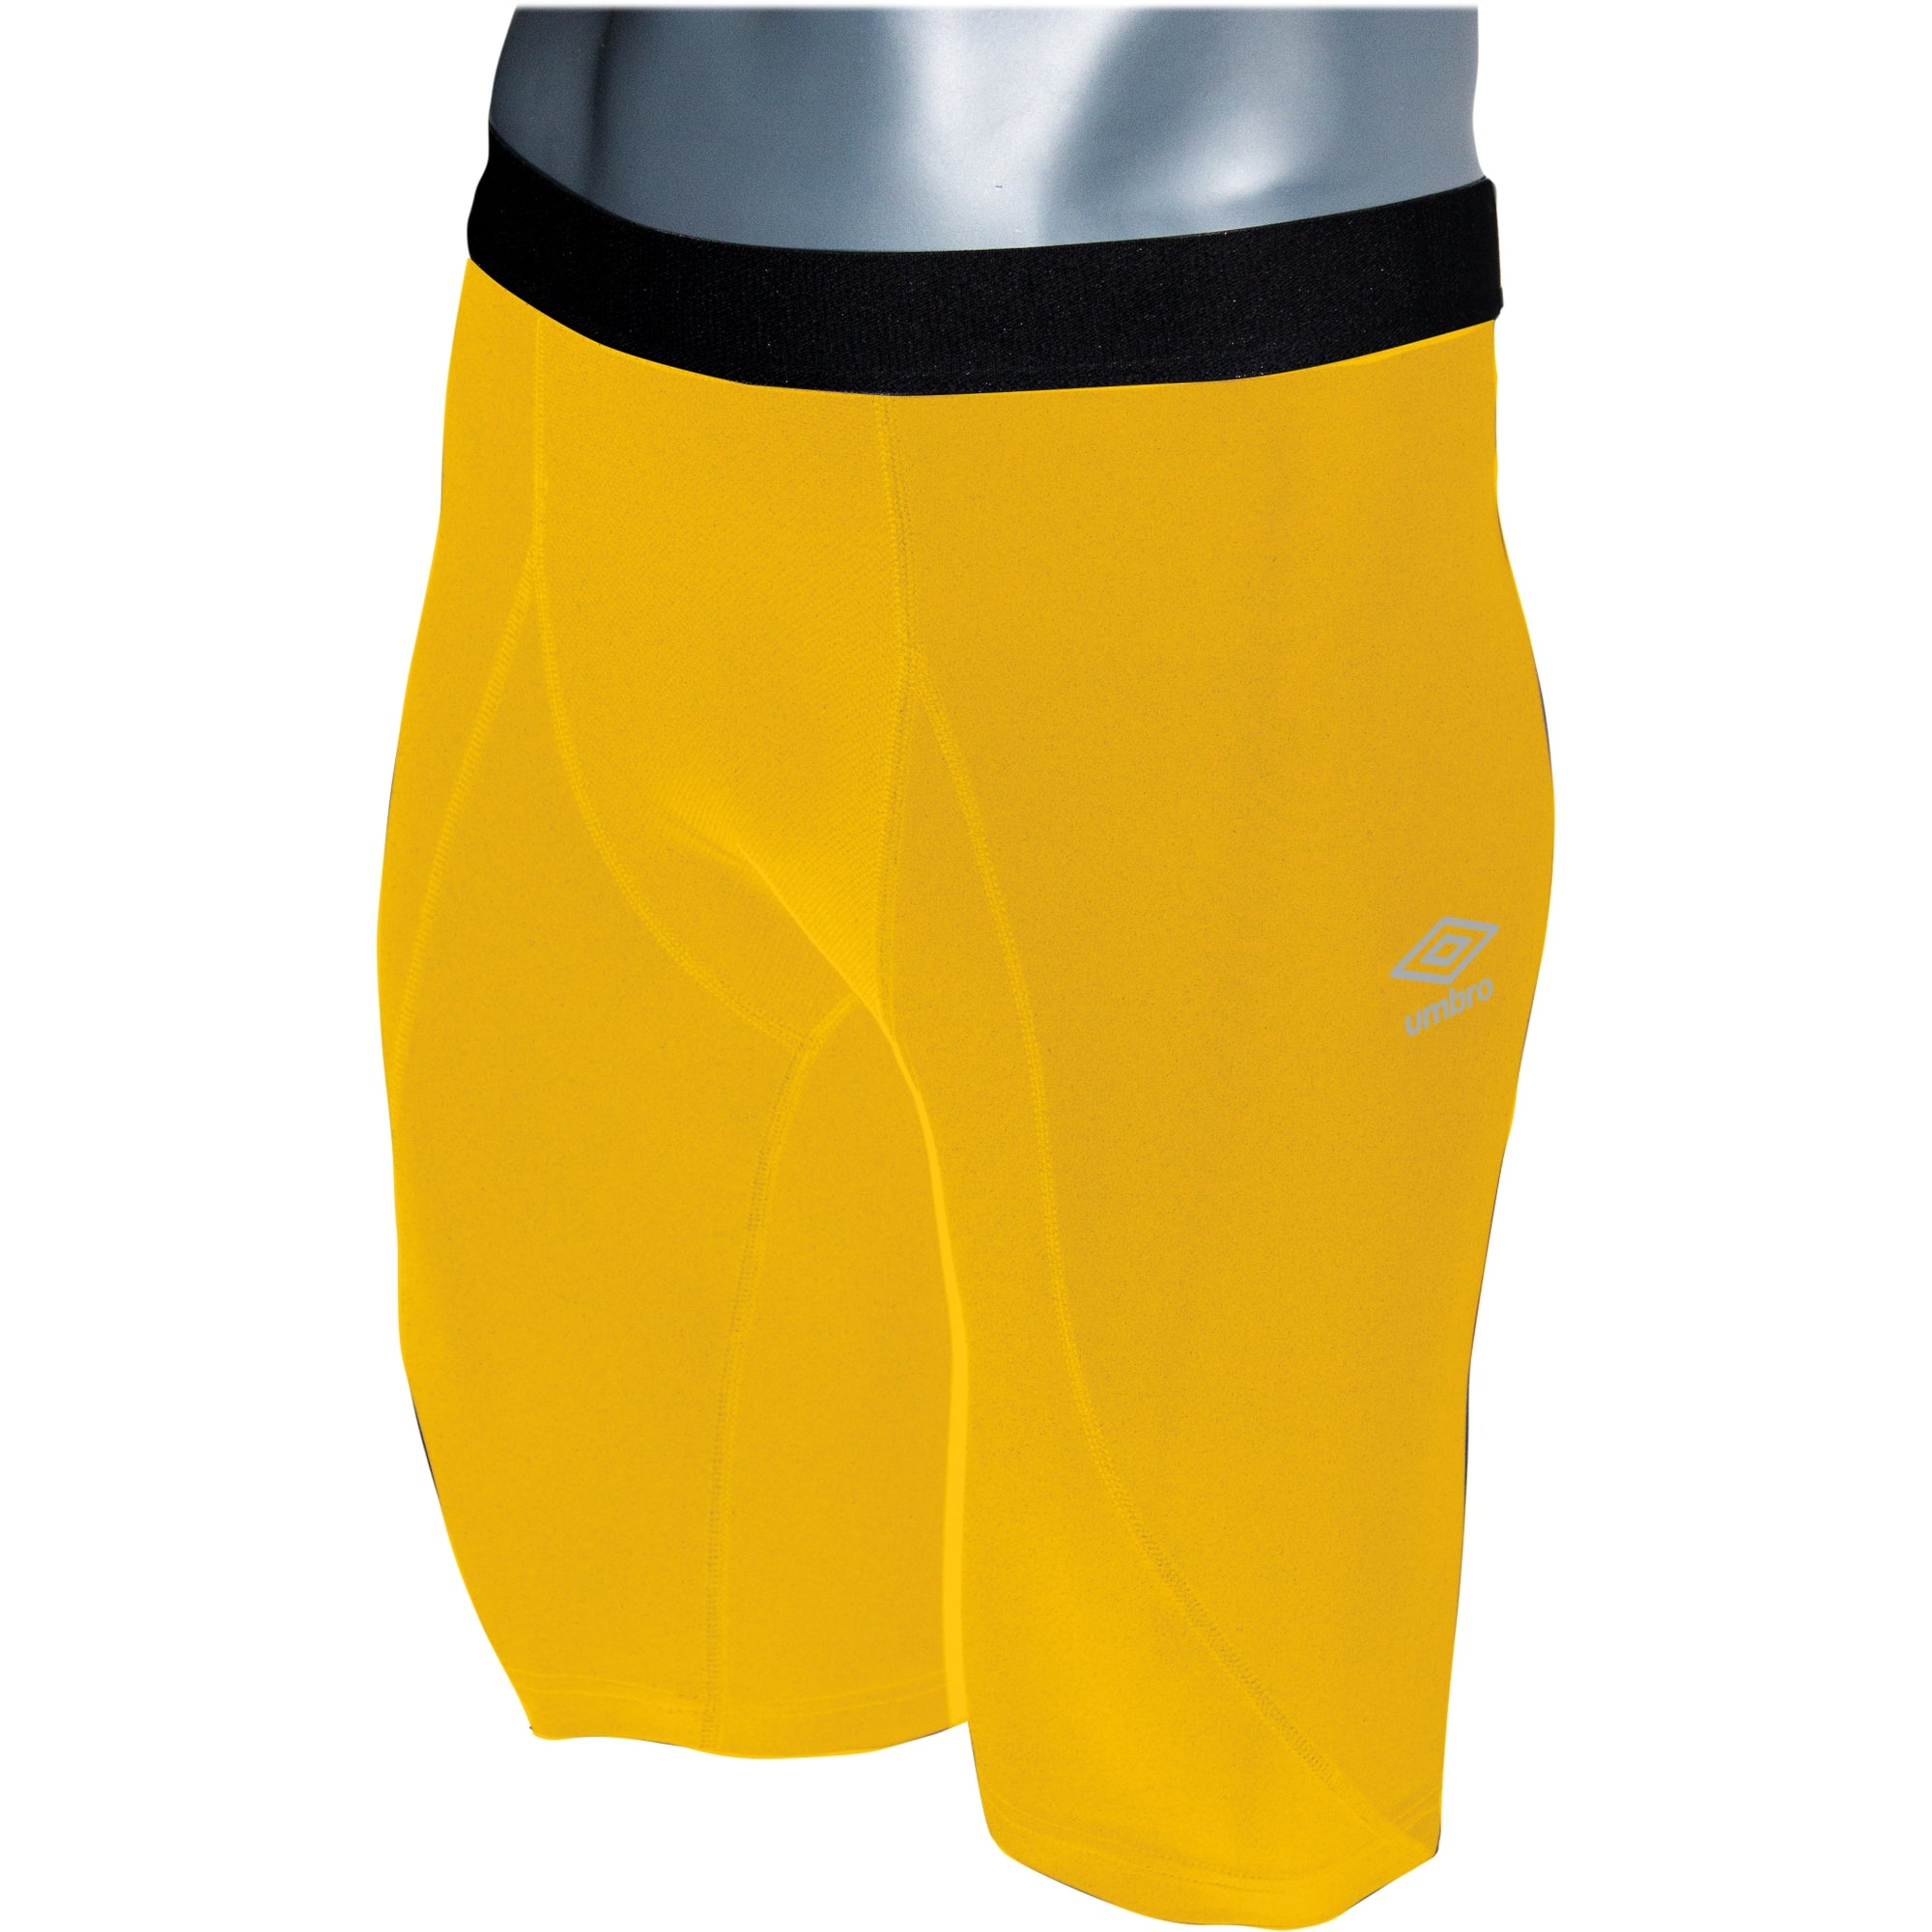 Umbro Elite Player Power Short in yellow with black waistband